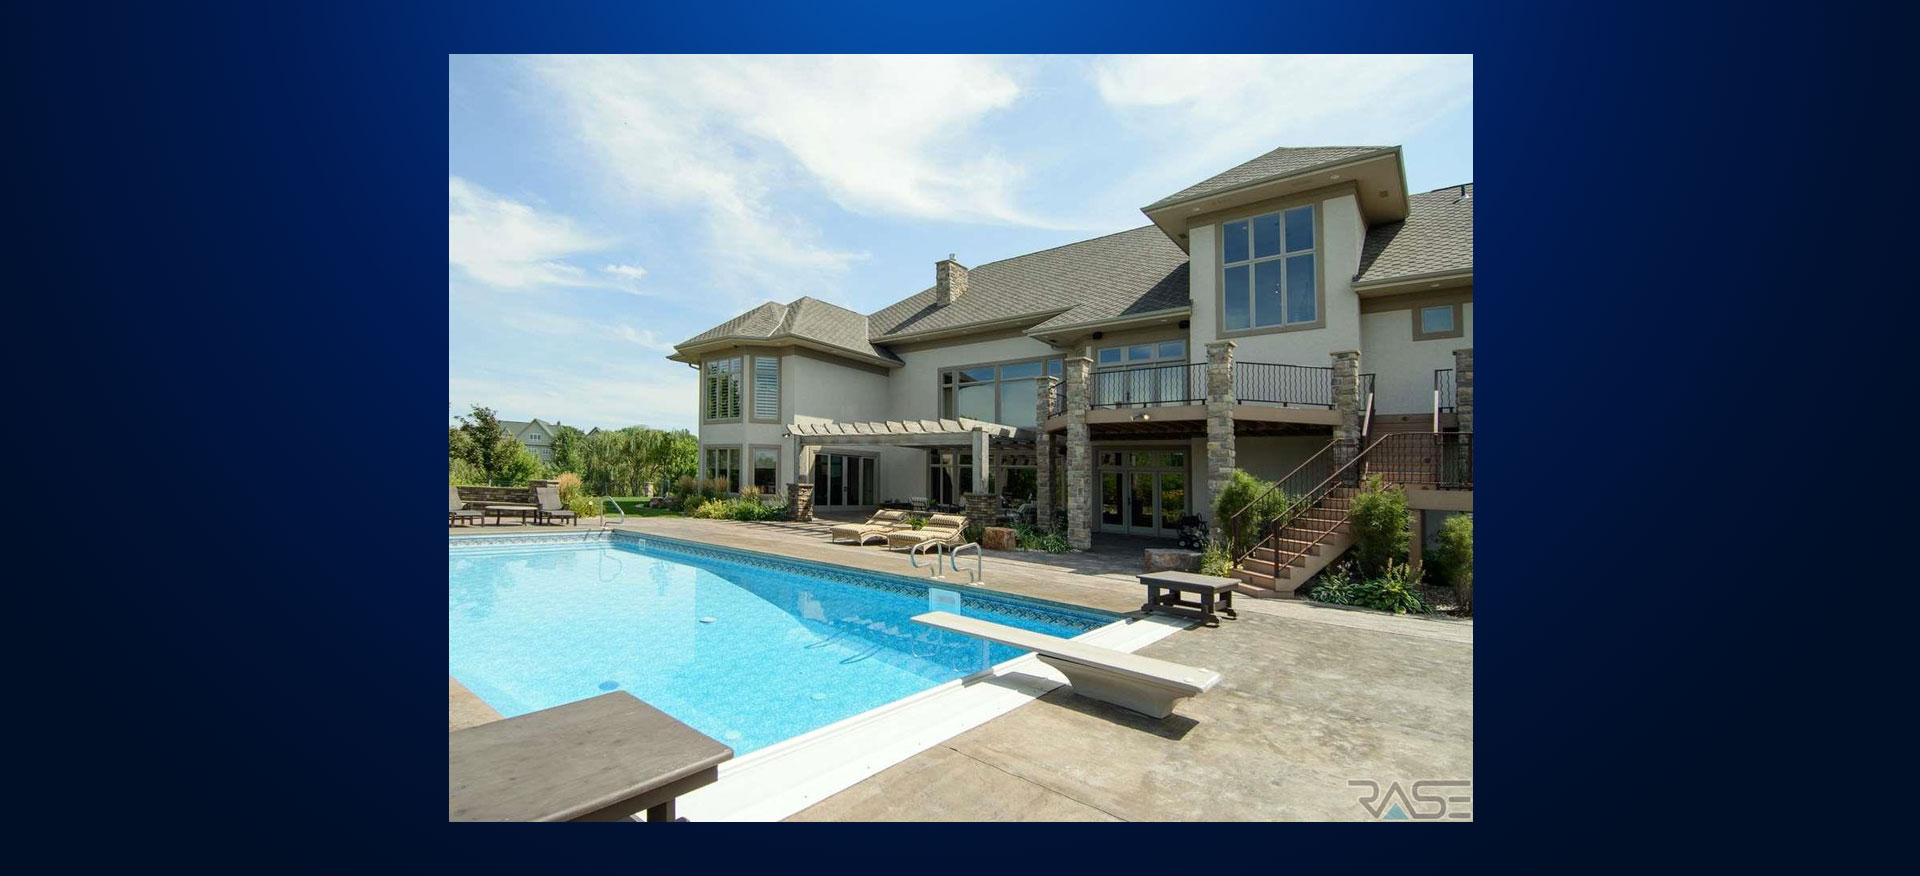 Pool view house for sale Sioux Falls. Record House Sale In Lincoln County